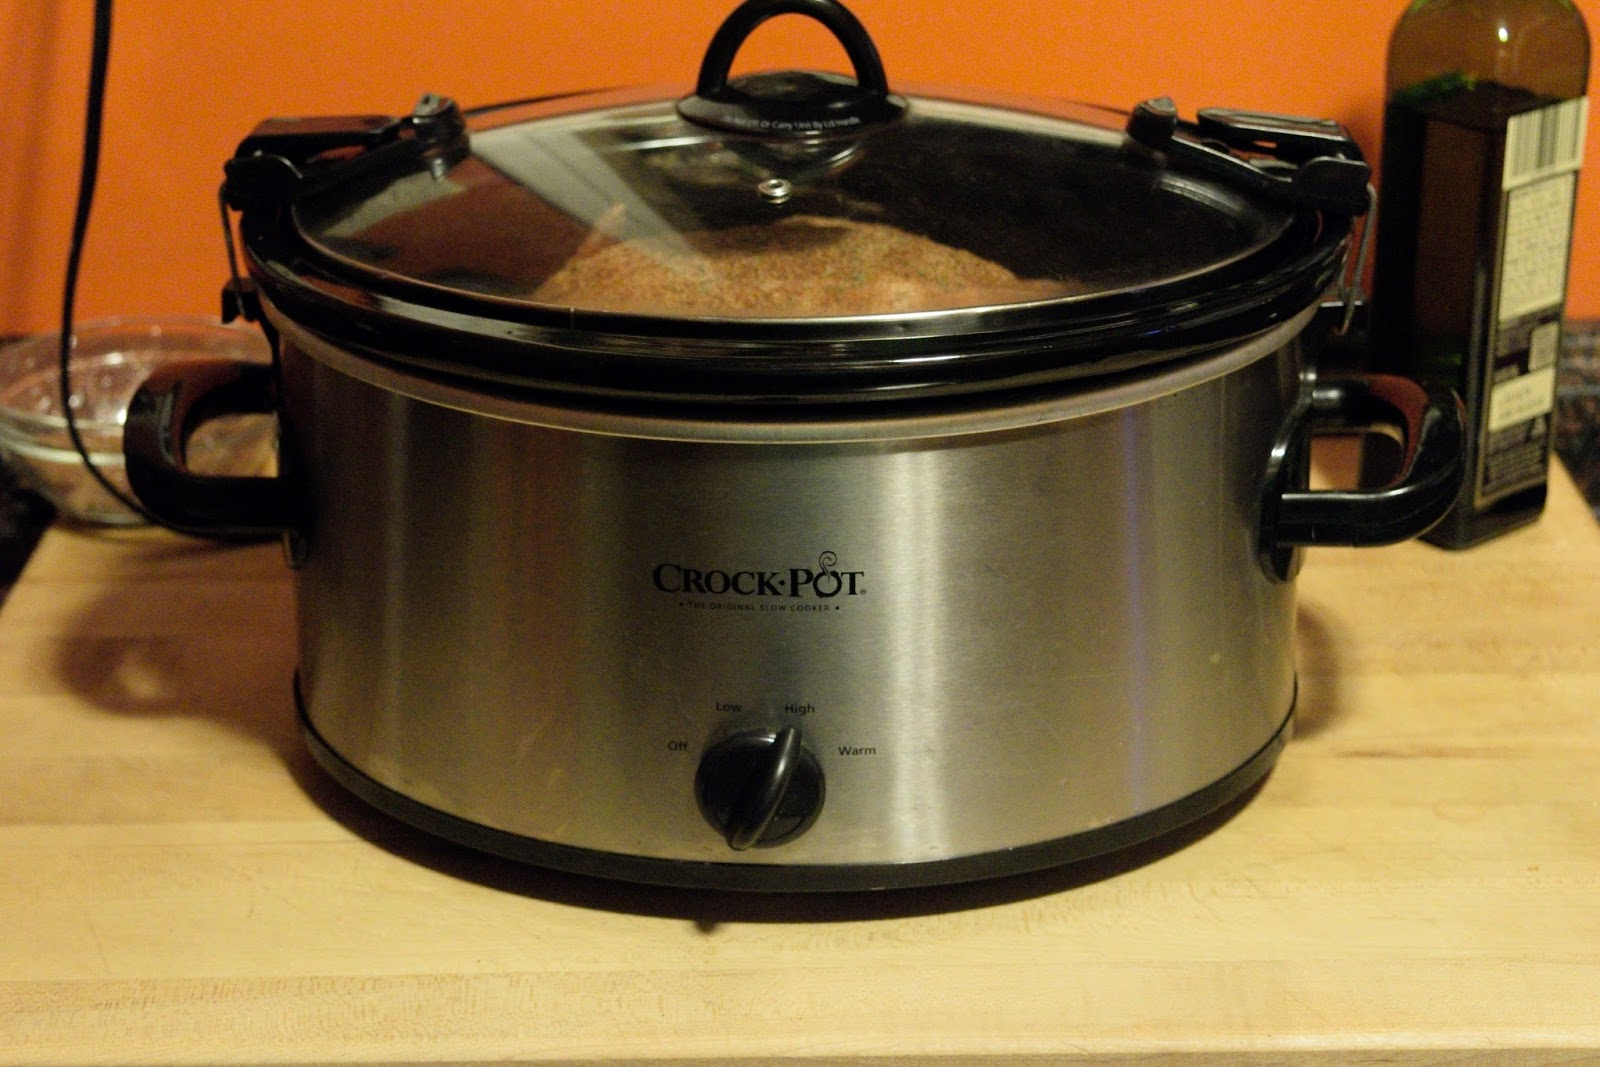 kitchen crock island bars how to cook a whole chicken in crockpot recipe the wife pot on counted with lid turned high